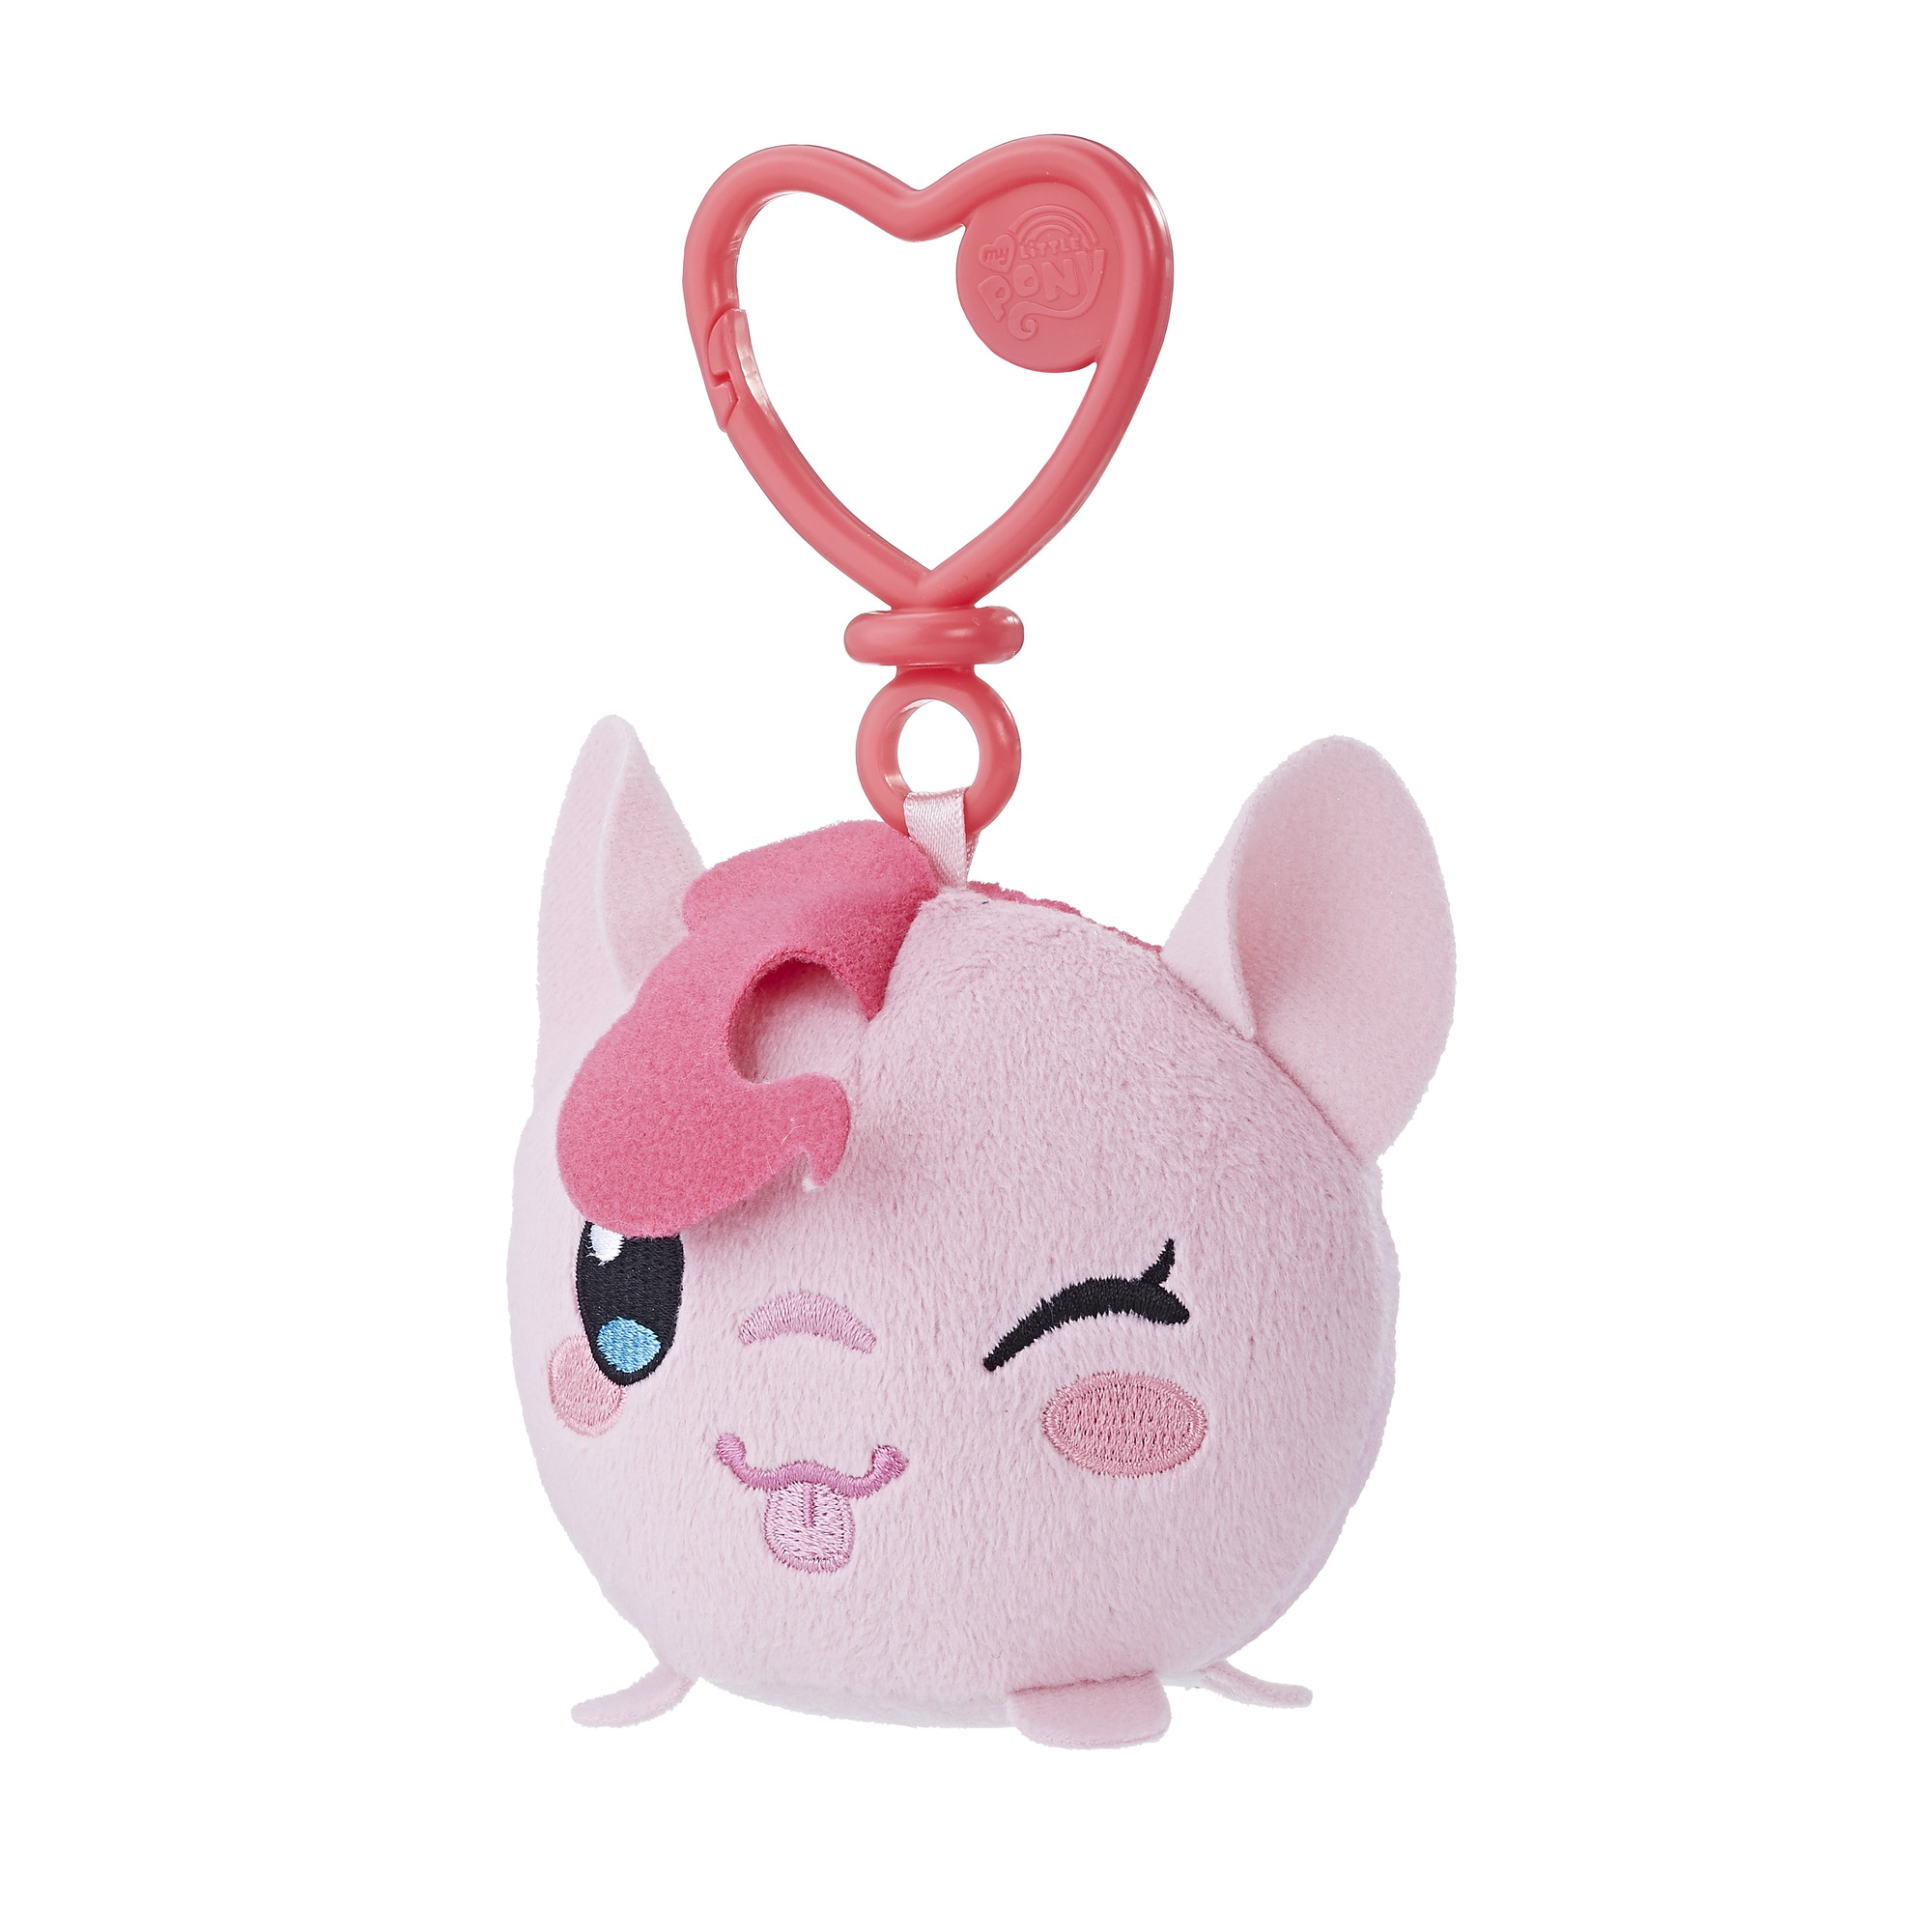 My Little Pony: The Movie Pinkie Pie Clip Plush by Hasbro